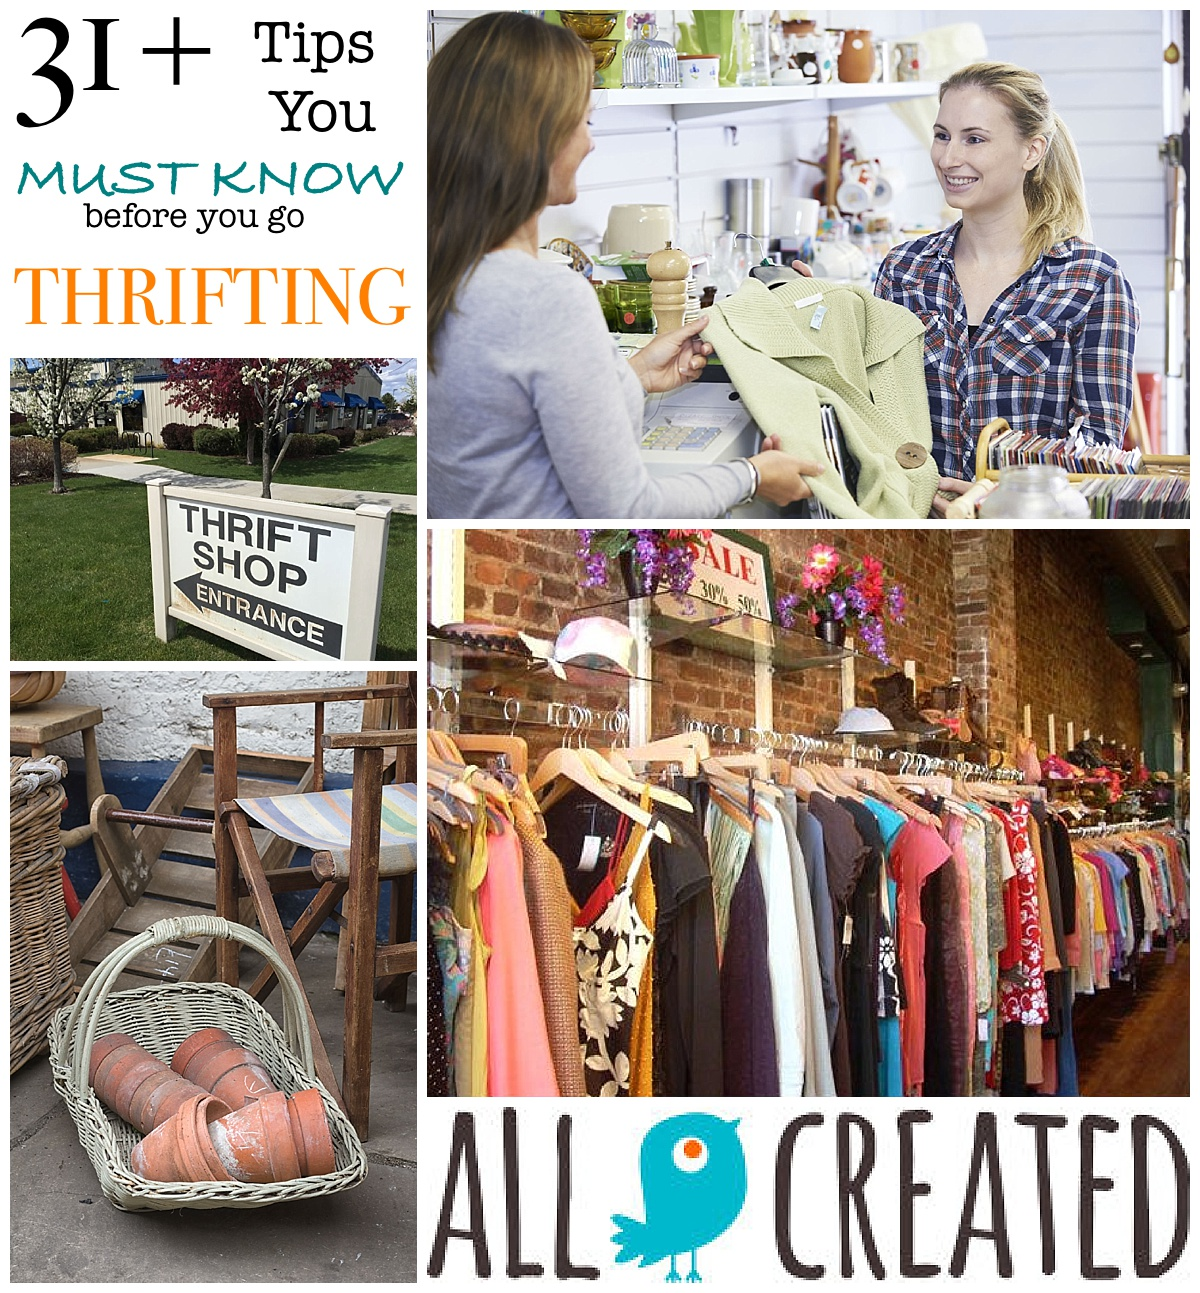 Thrift Store Shopping Tips That Help You Find The Best Stuff